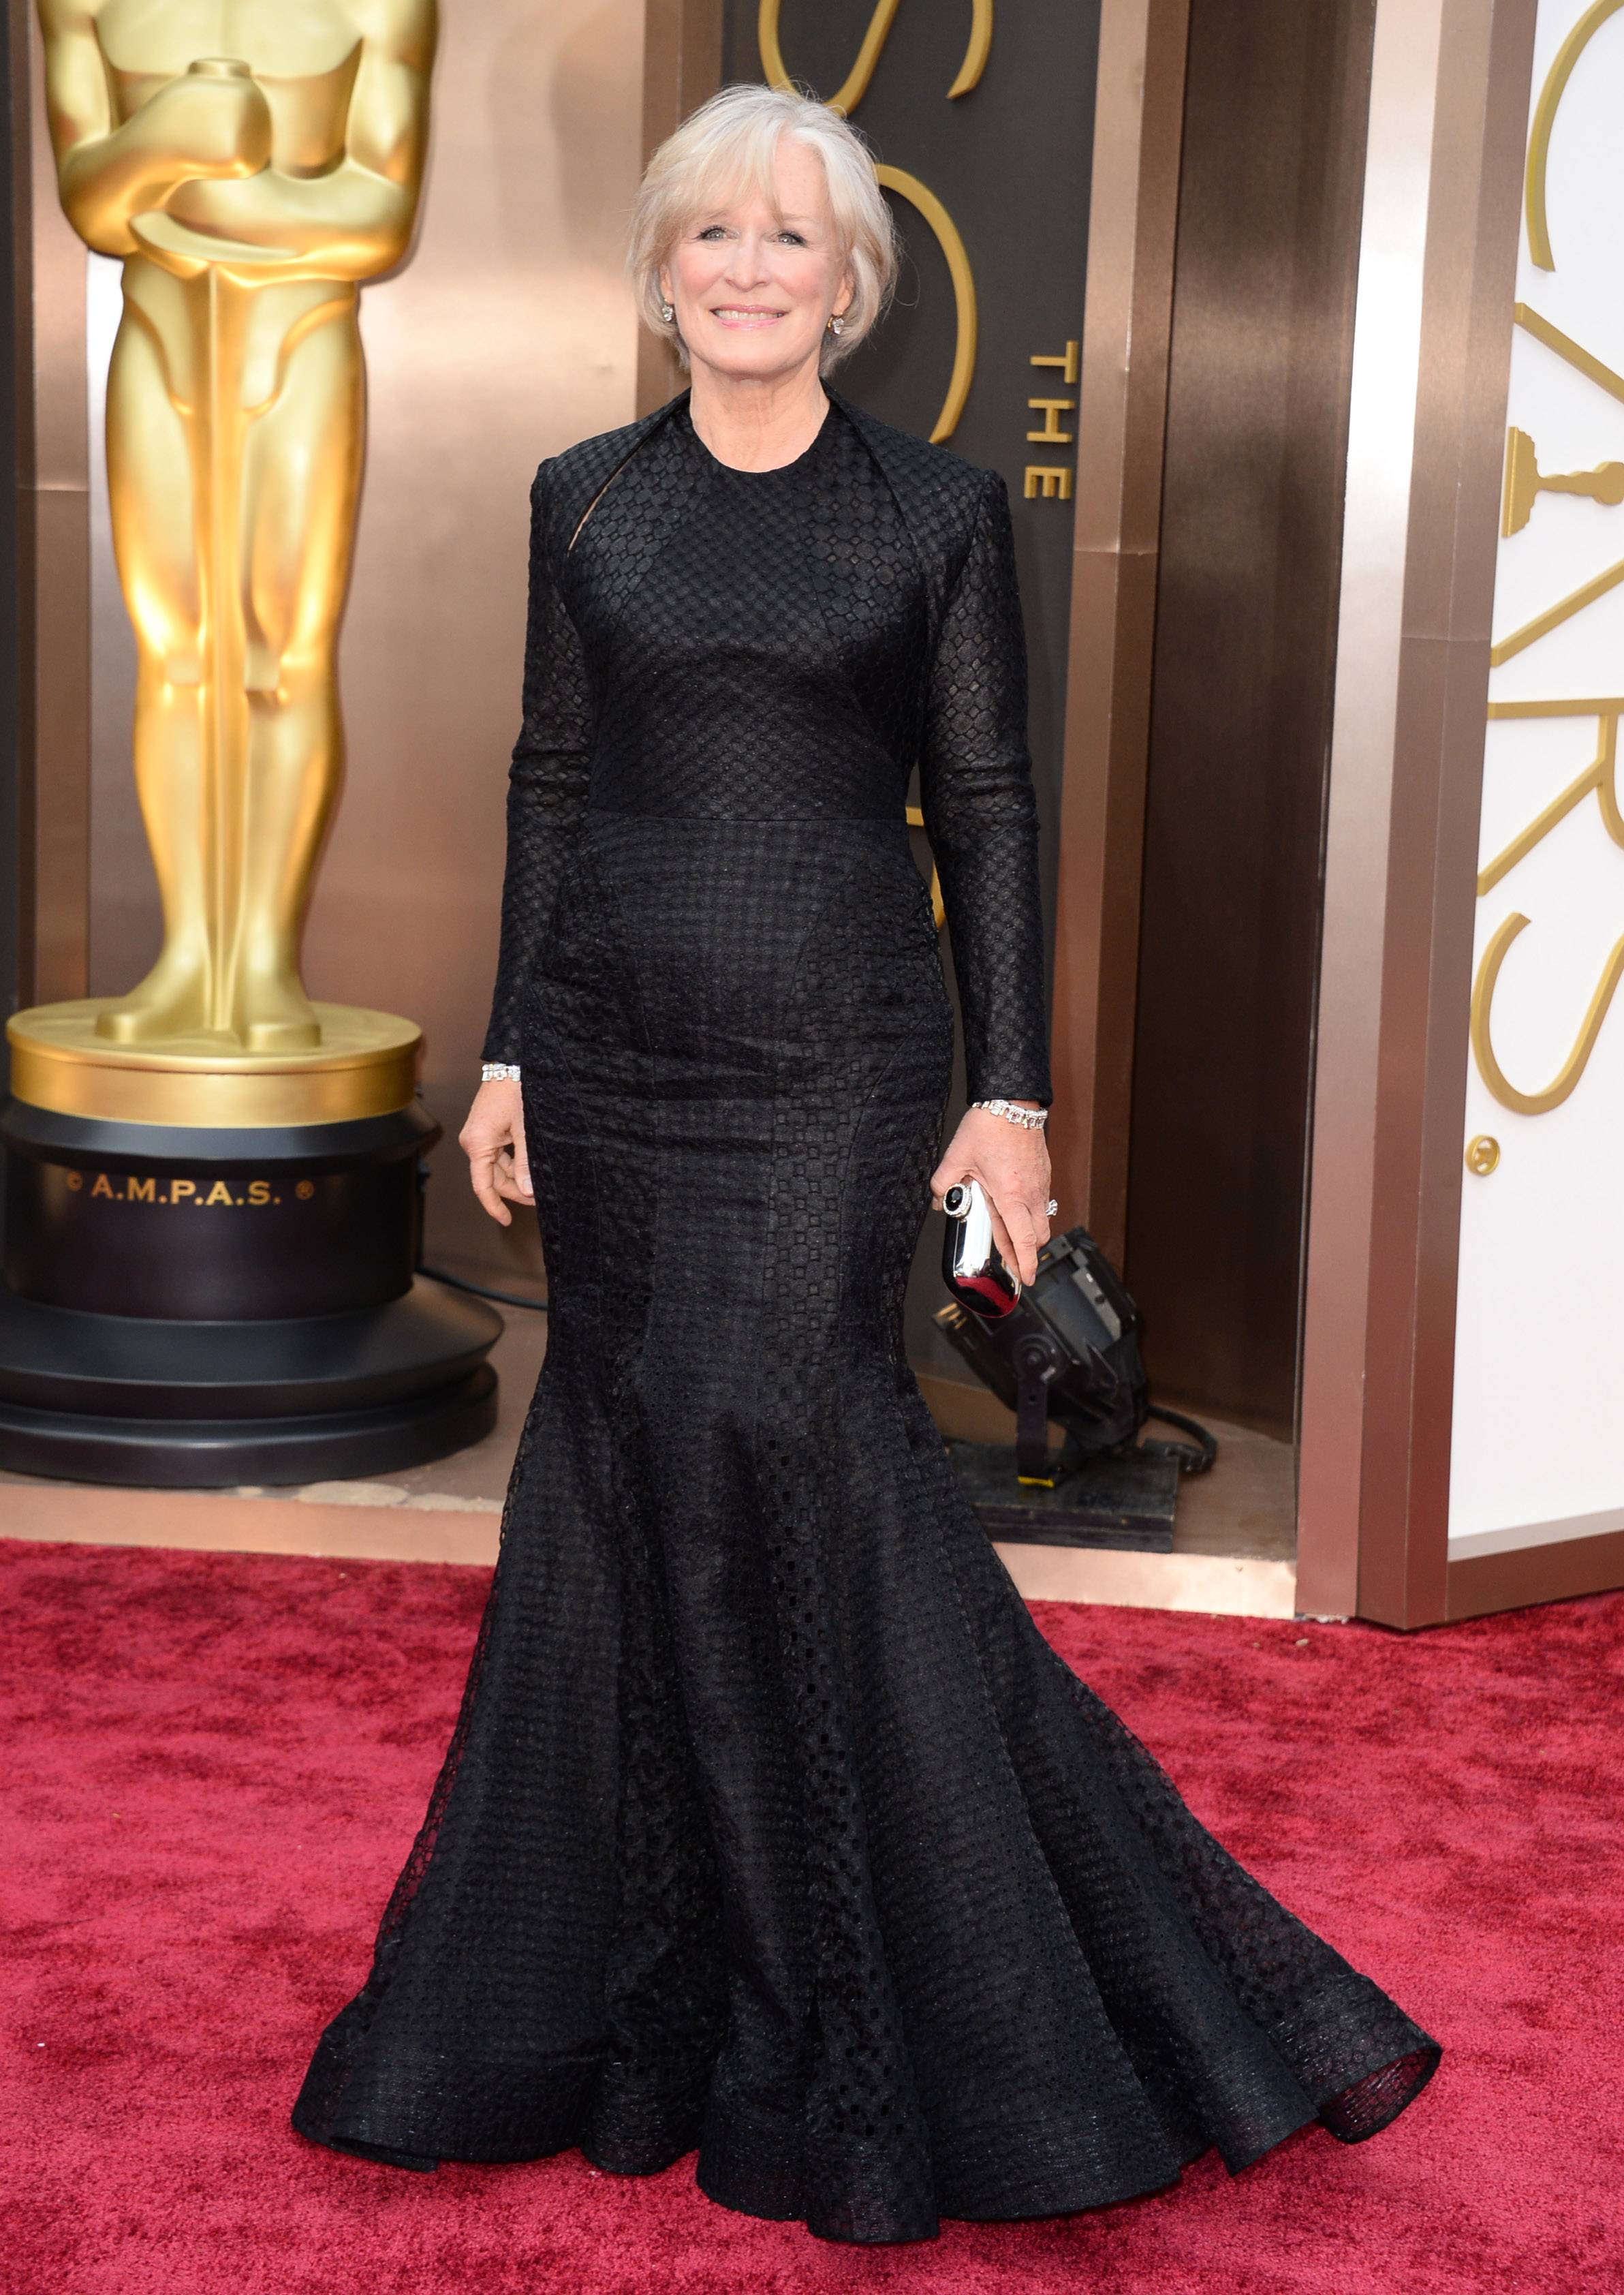 Glenn Close goes for classic black at the Oscars on Sunday in Los Angeles.